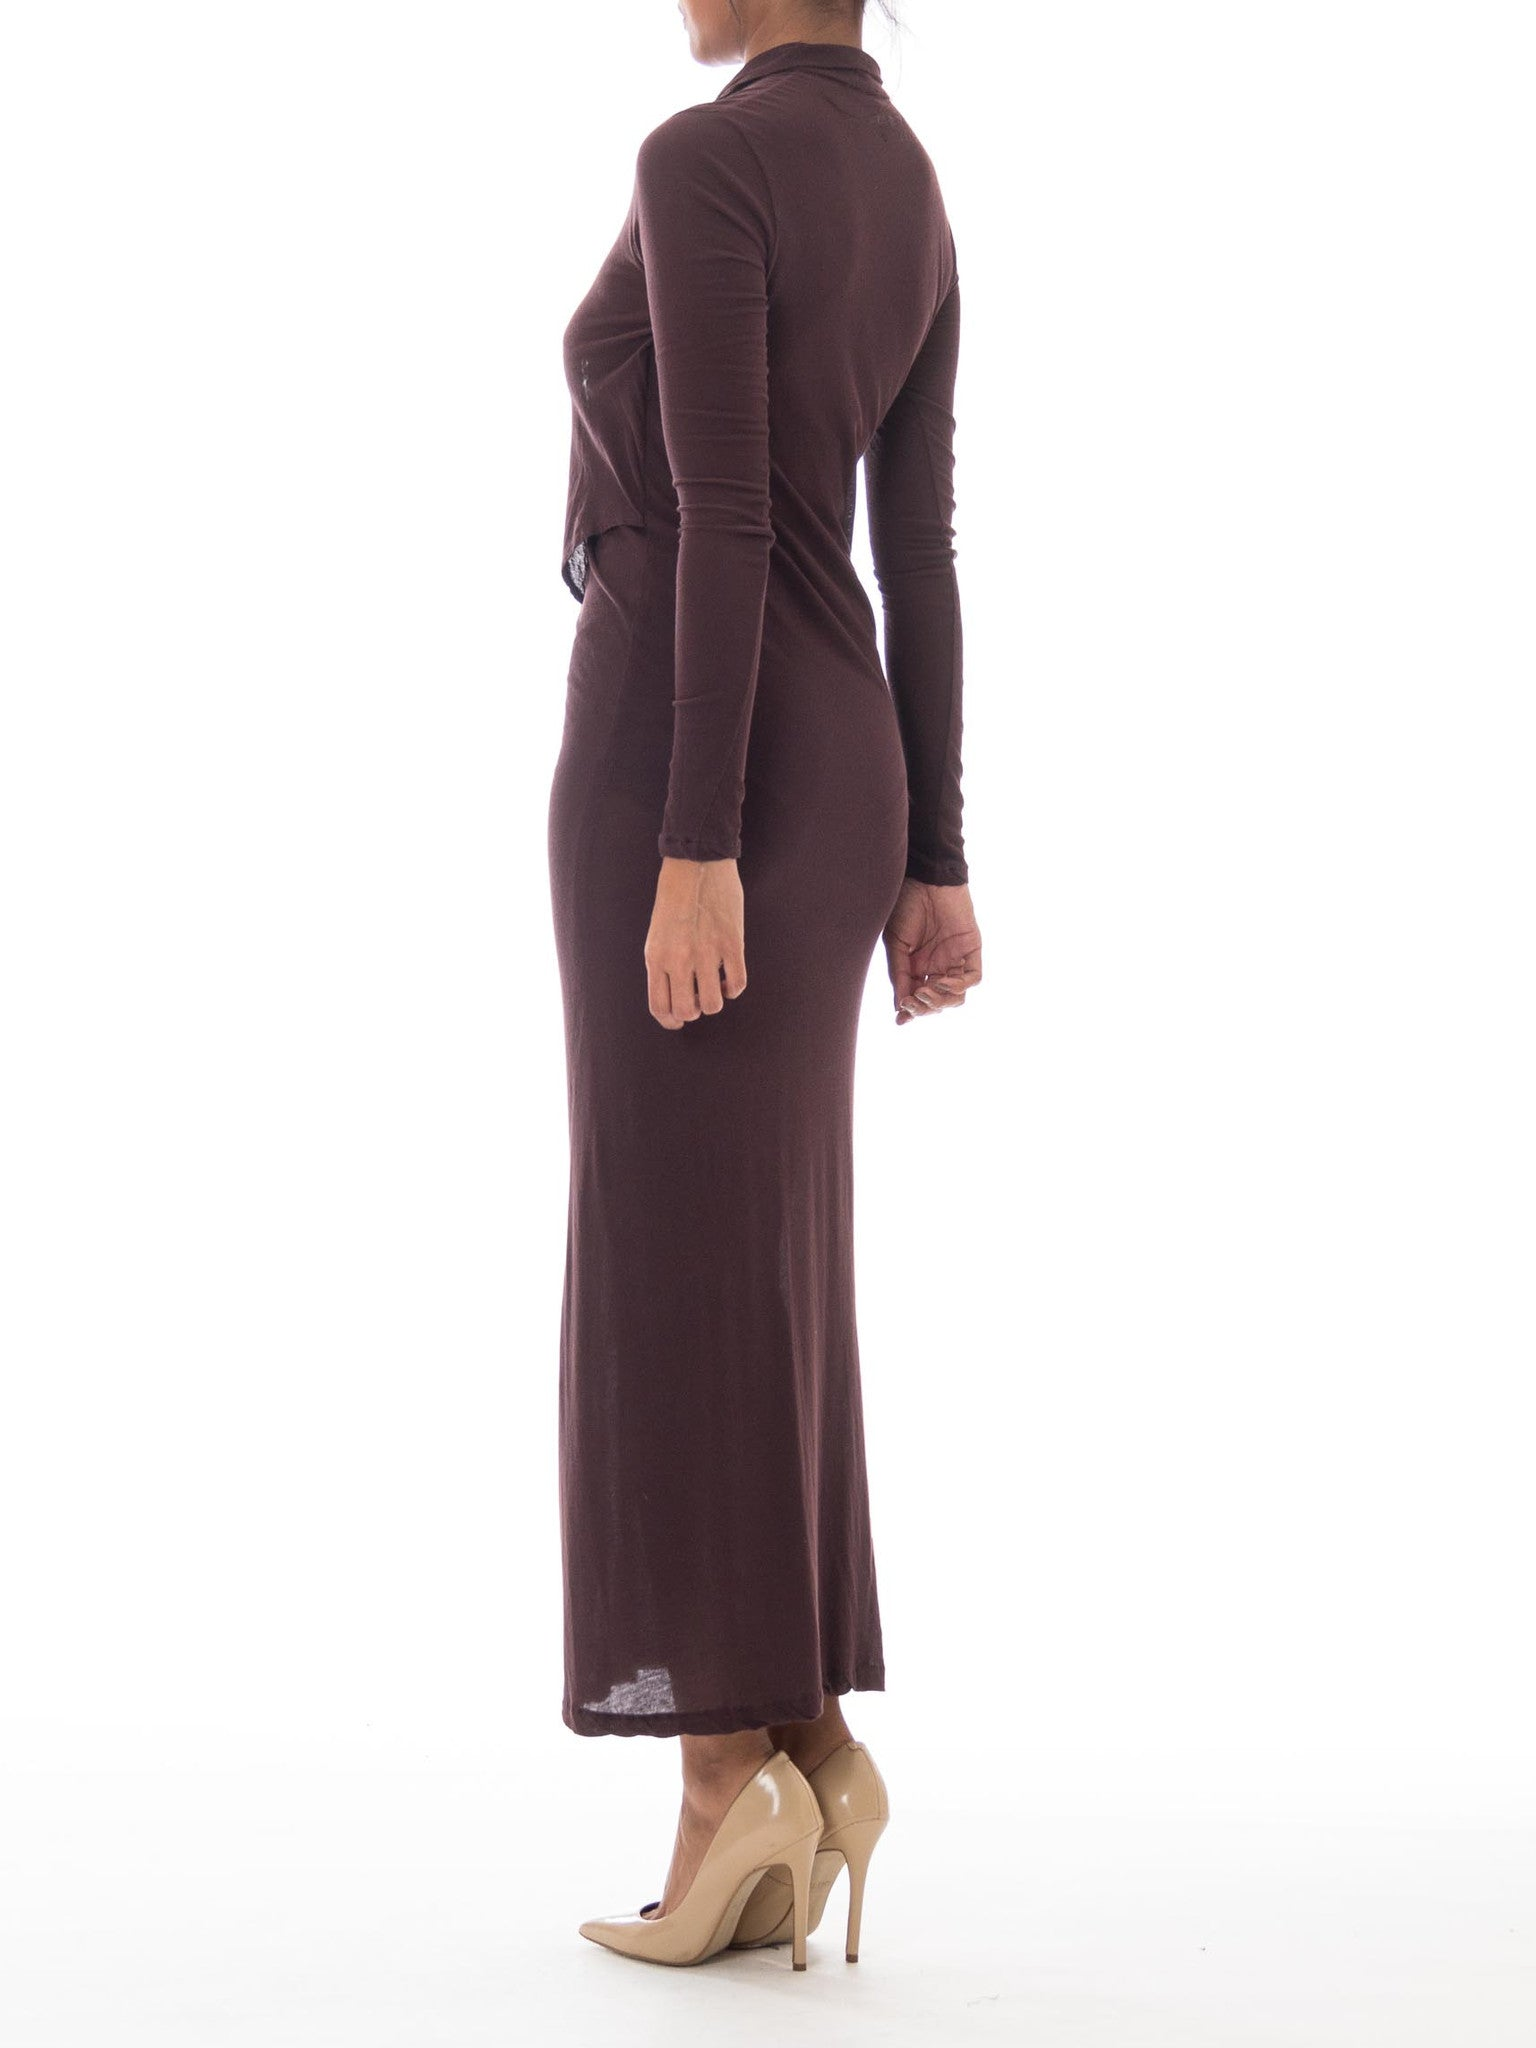 1990S YOHJI YAMAMOTO Brown Jersey Long Sleeve Layered Maxi Dress